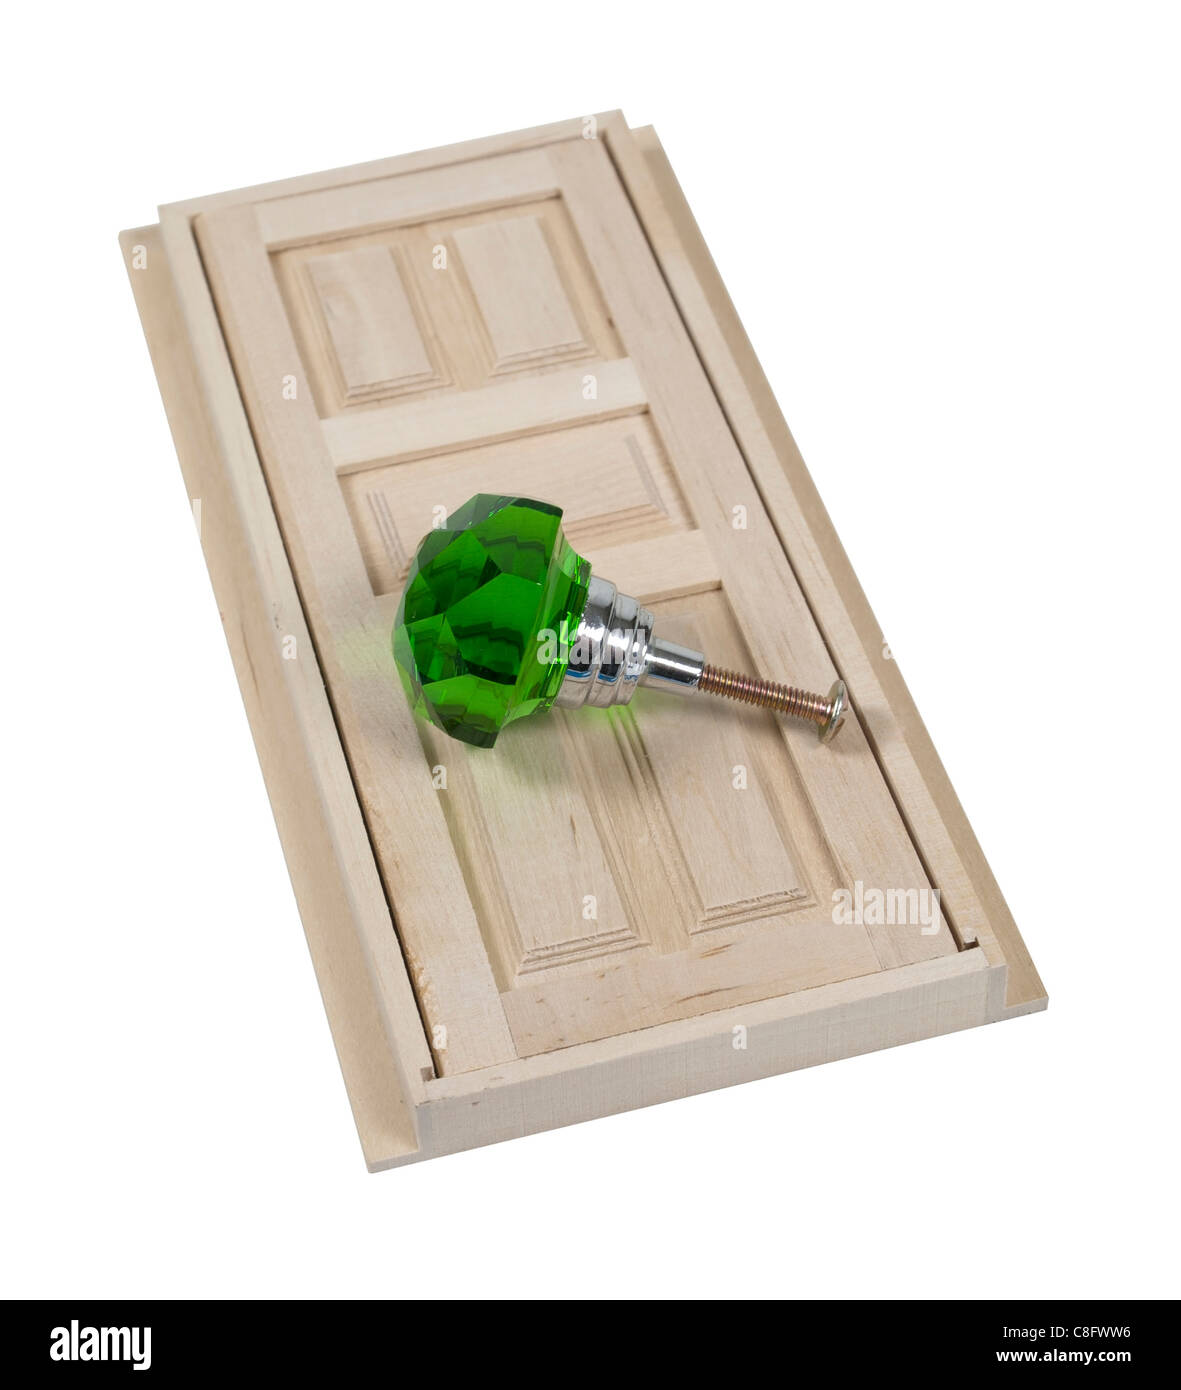 Wooden interior door with five panels used to gain entrance to another room with green doorknob - path included - Stock Image